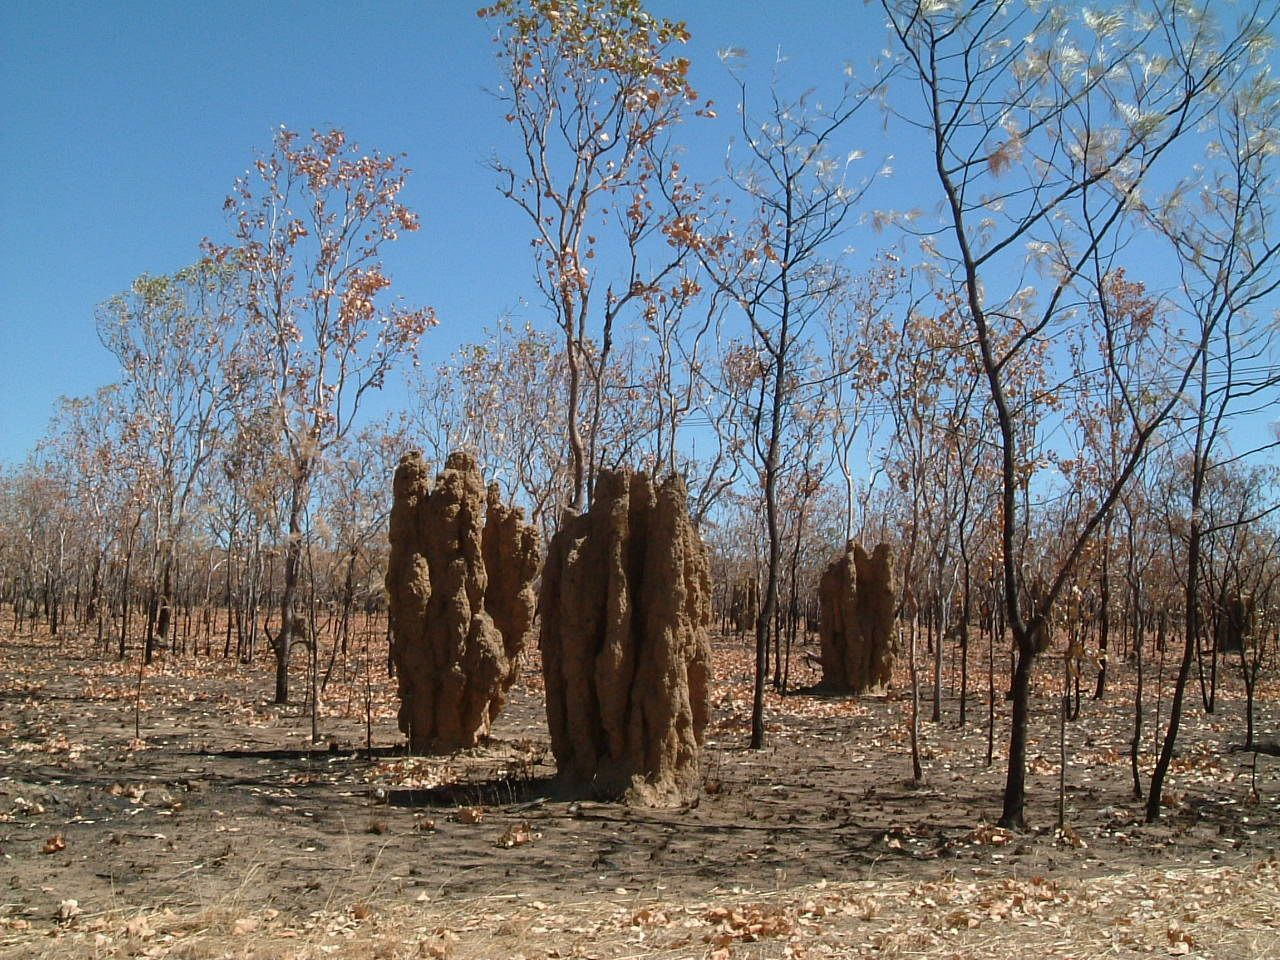 termite mounds essay Structure: termite mound how do termites direct or control their daily activities who coordinates their work how do they repair parts of mounds that are destroyed.